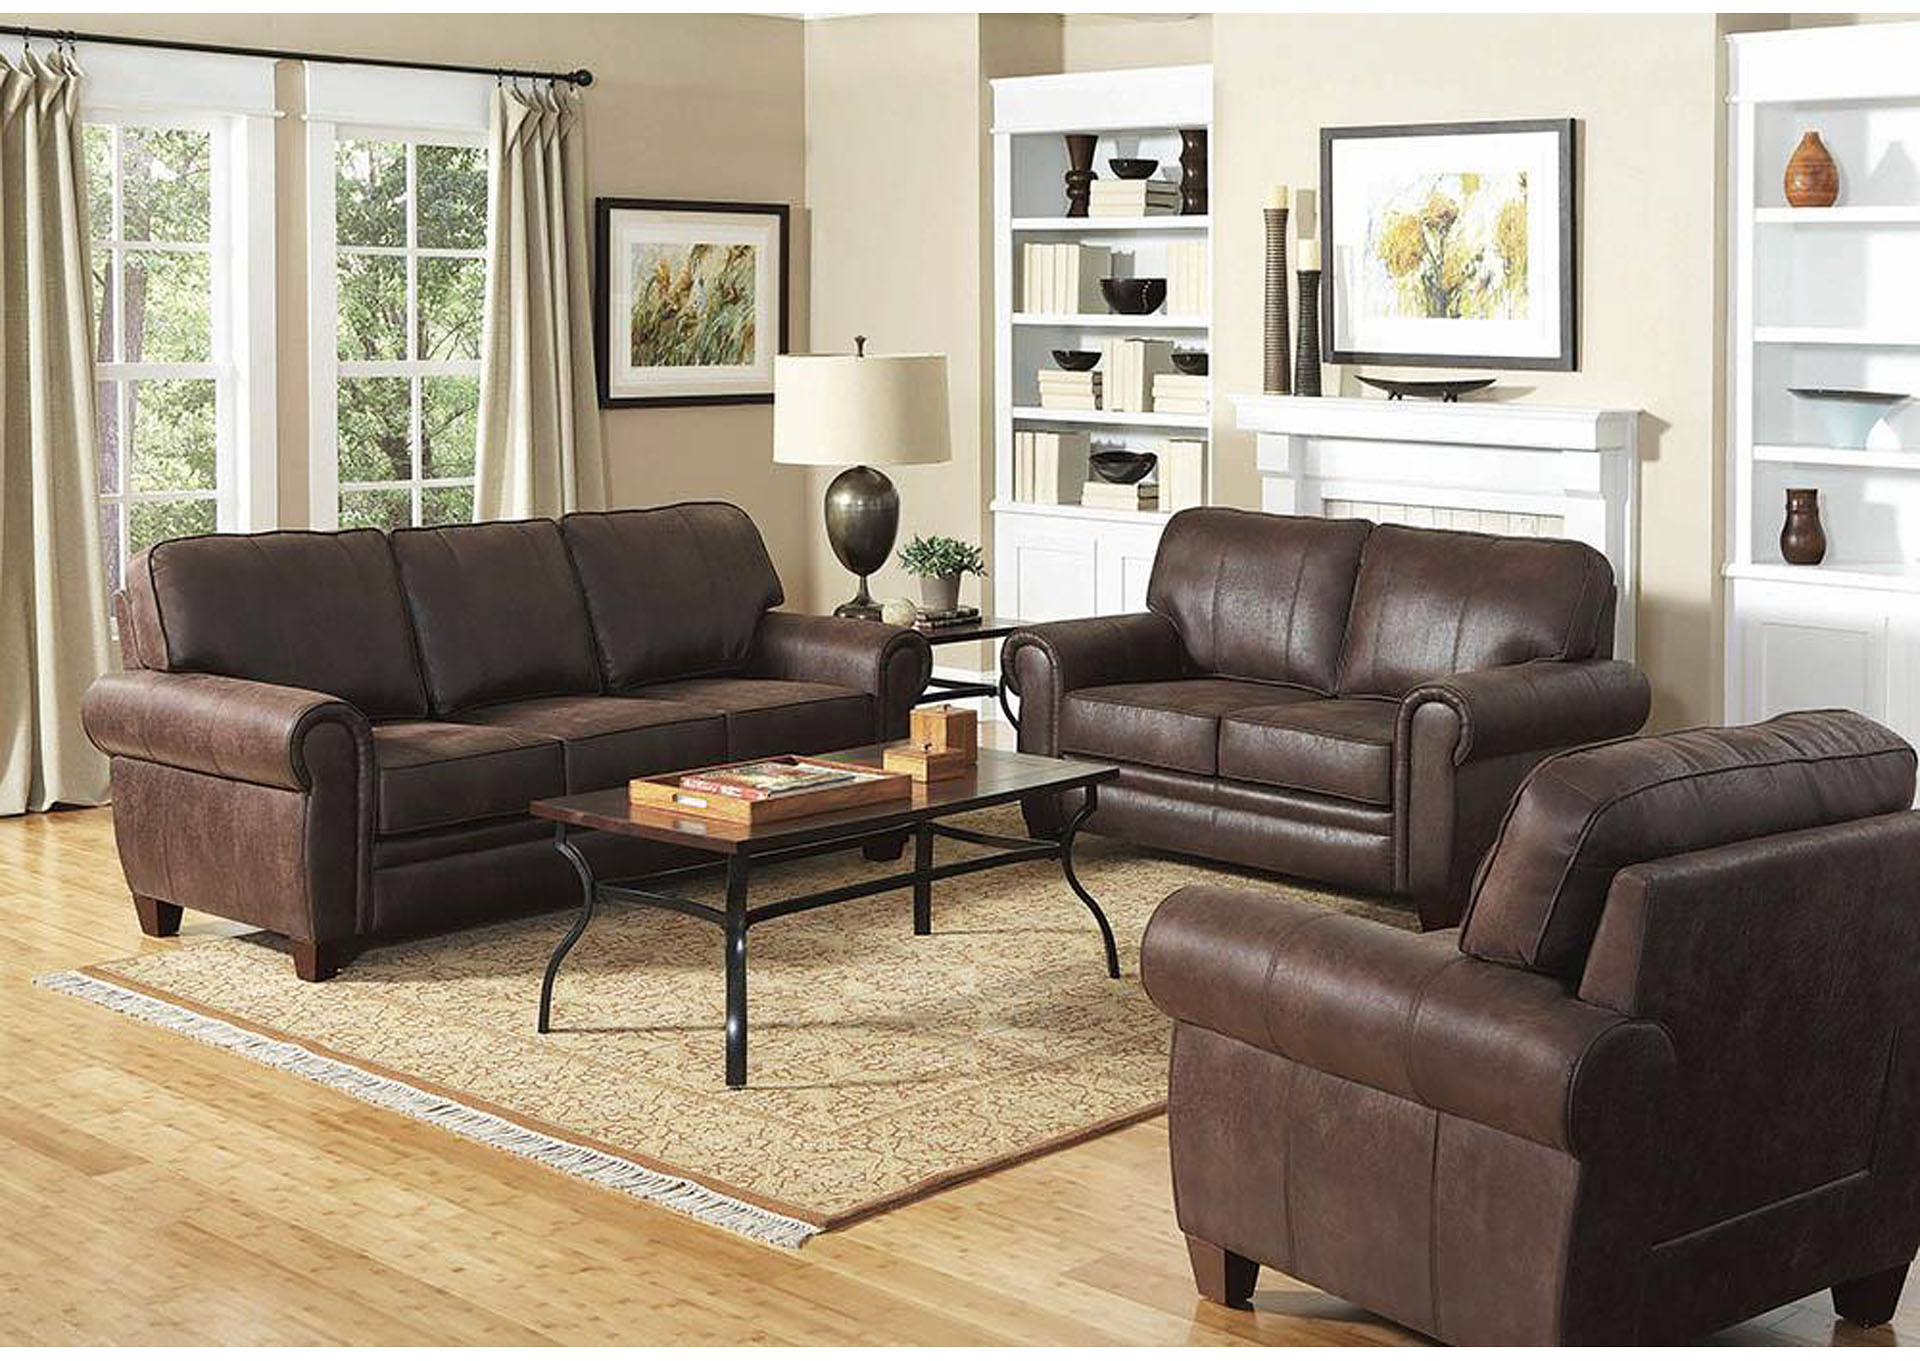 Austin 39 S Couch Potatoes Furniture Stores Austin Texas Bentley Brown Love Seat